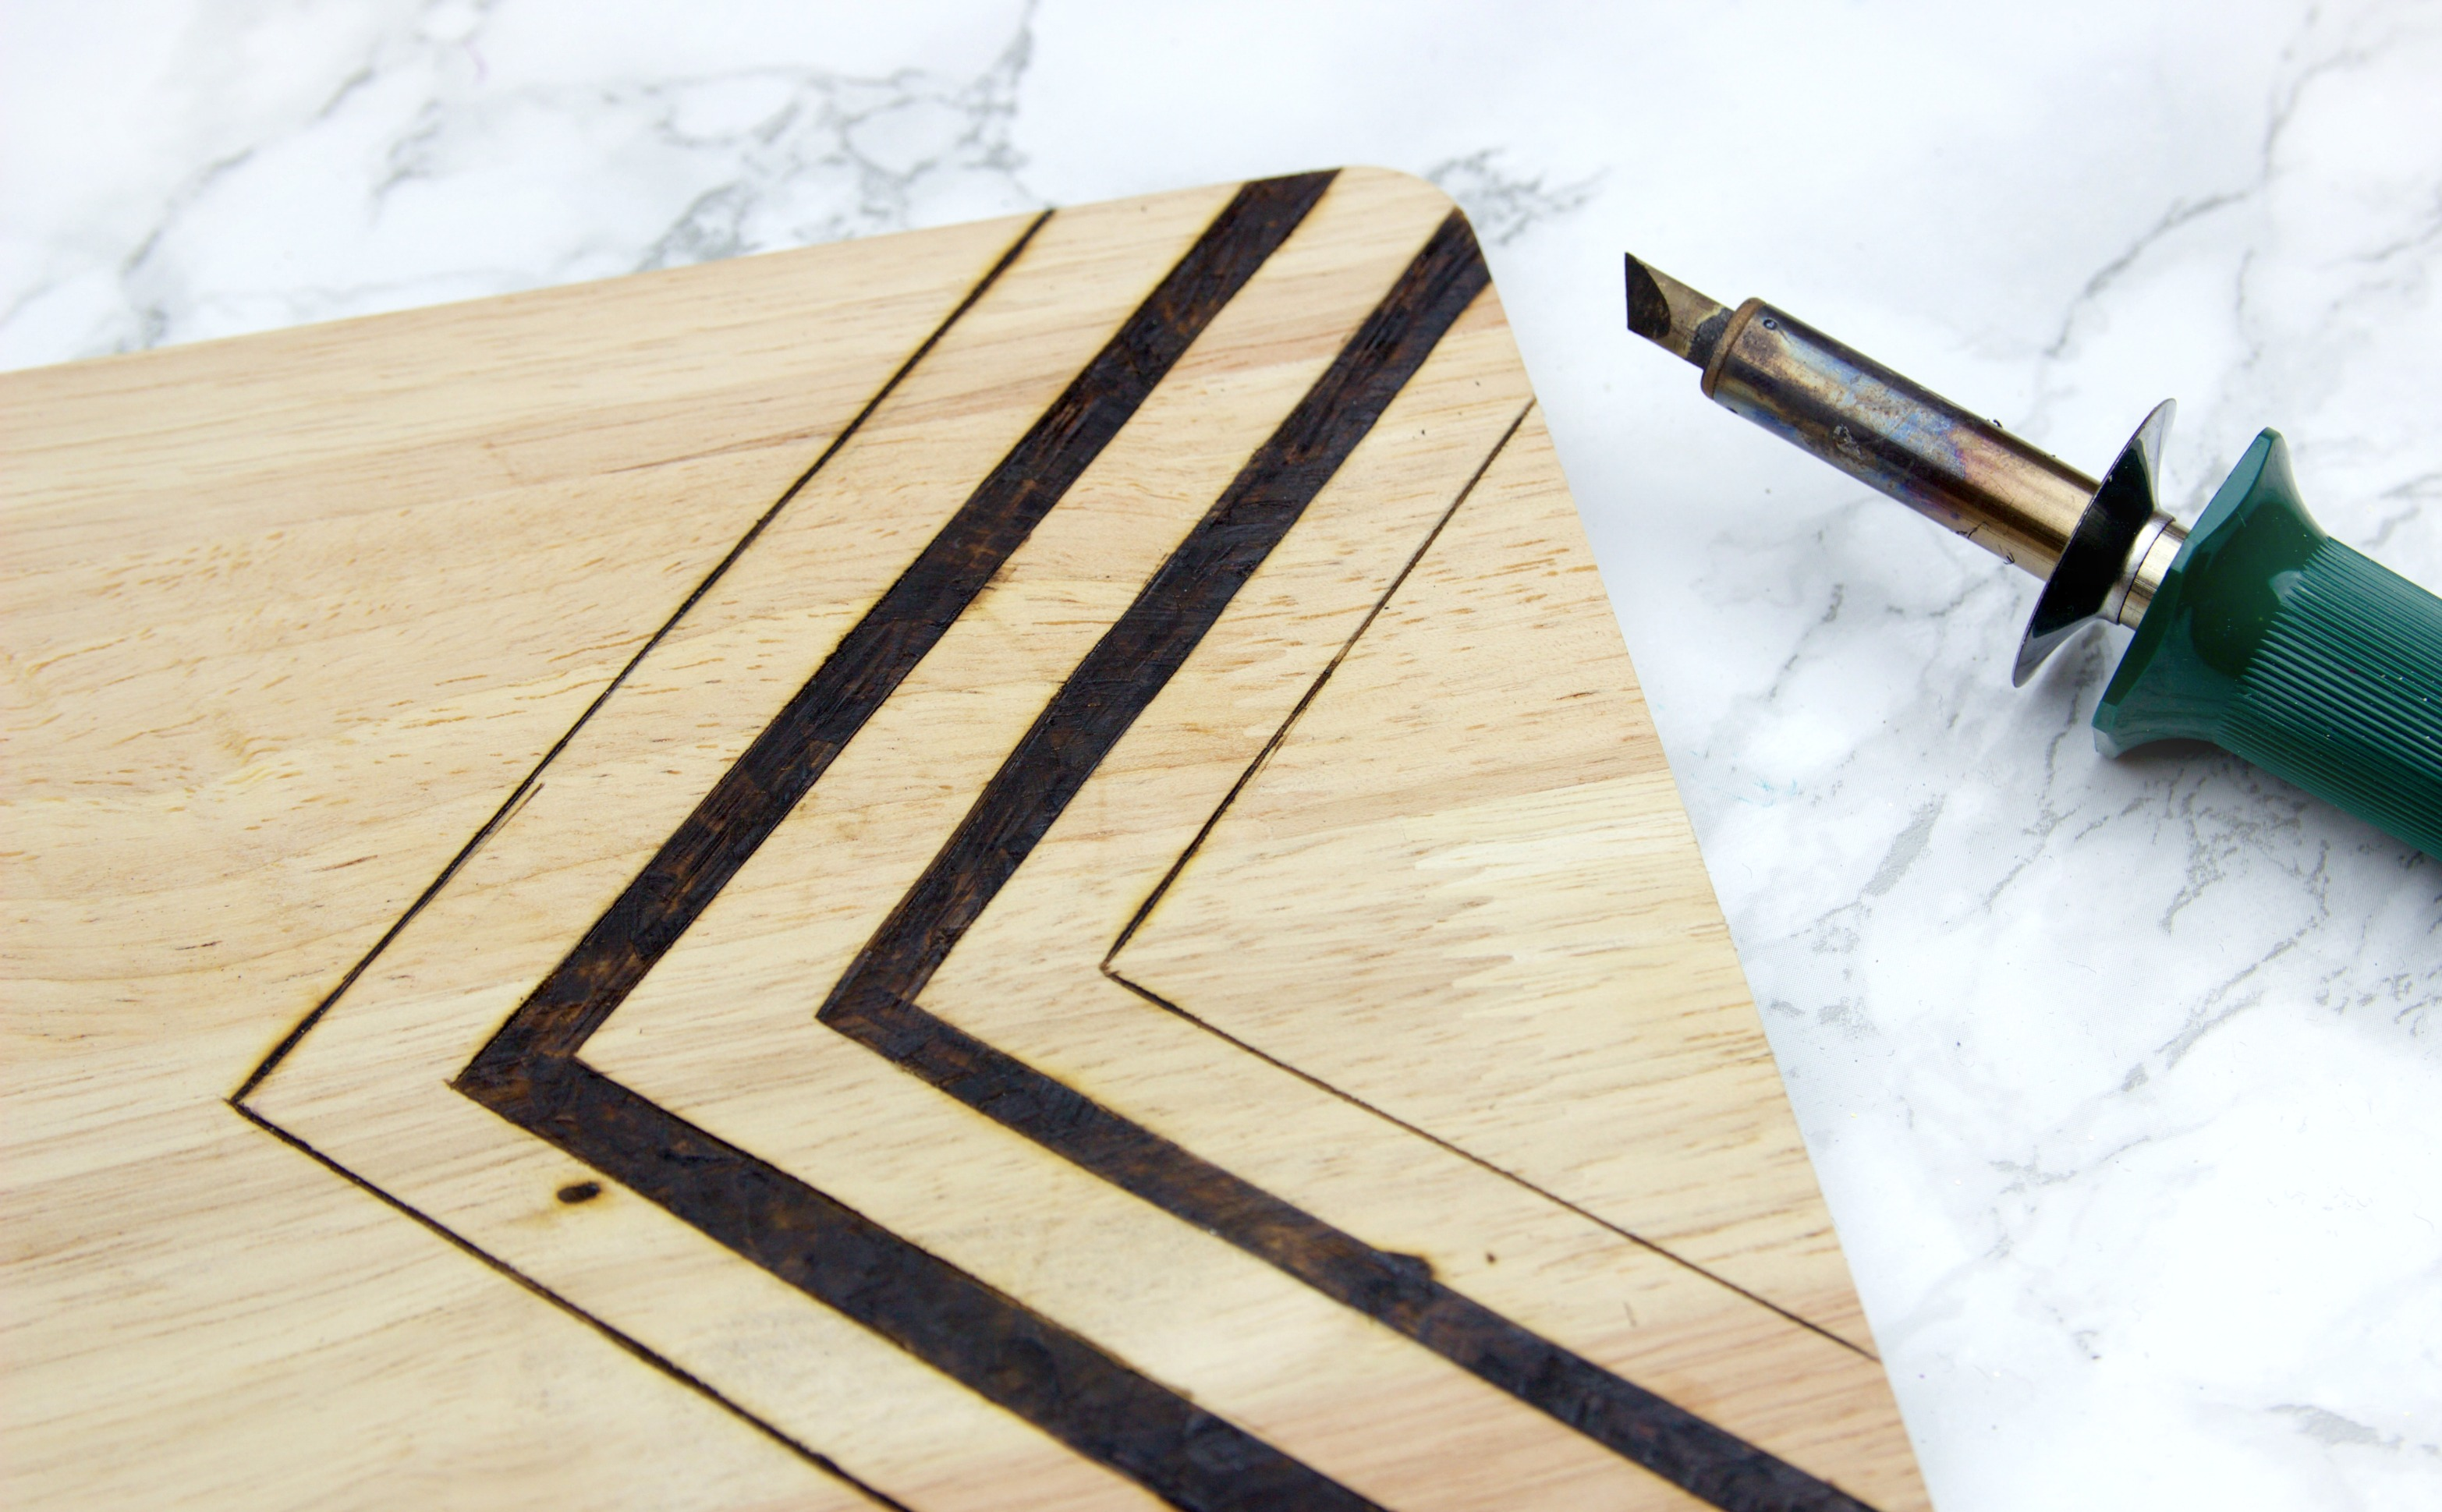 DIY Wood Burned Cutting Board - A Little Craft In Your Day